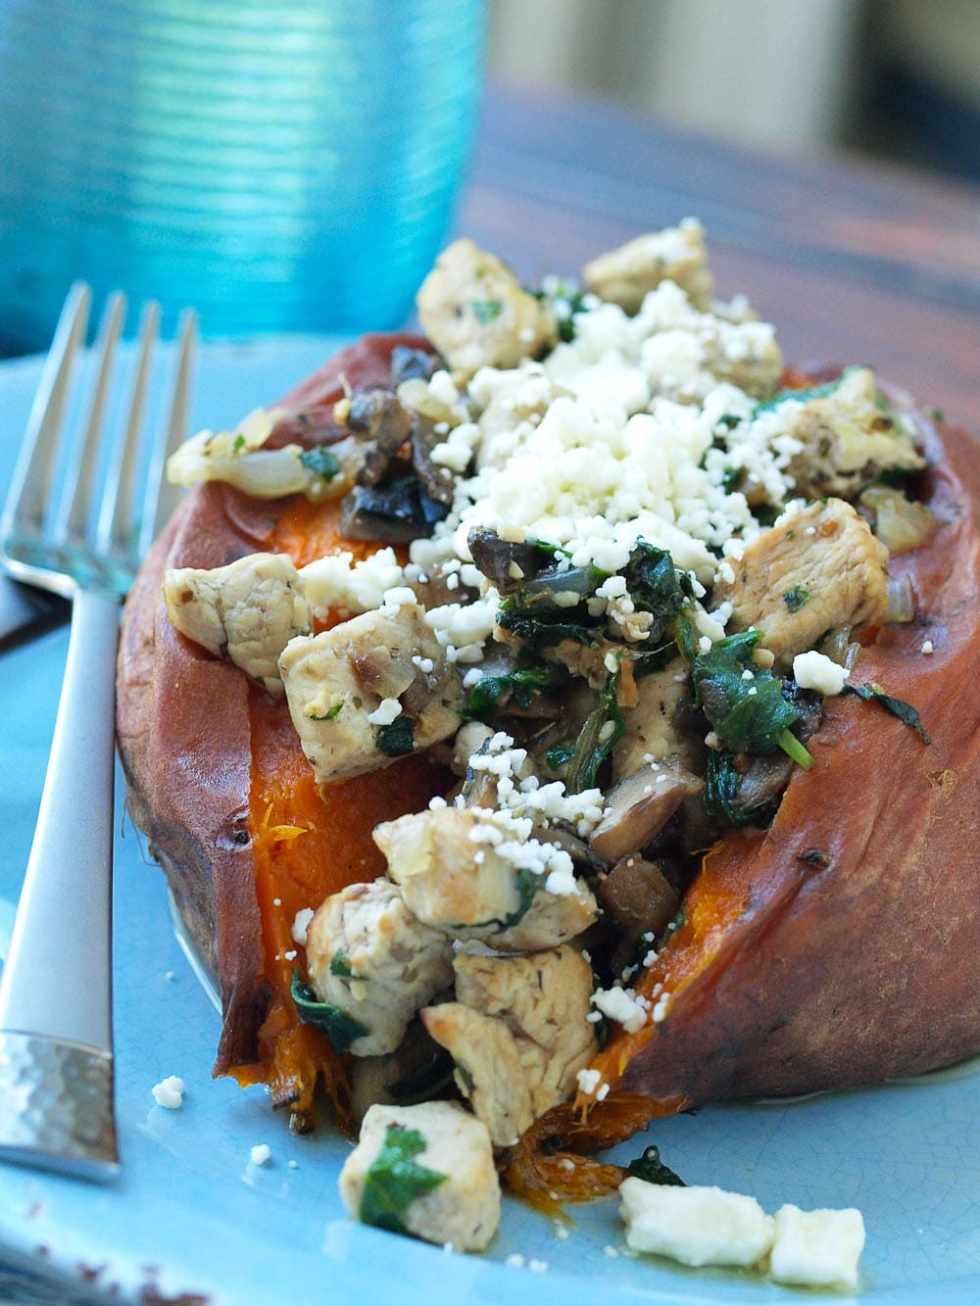 Chicken, Spinach, Mushroom, and Feta Stuffed Sweet Potato Recipe. You can cook the sweet potatoes in the crockpot, and the rest of the recipe takes less than 20 minutes! This is a great healthy recipe for a quick weeknight dinner! Clean eating and gluten-free.